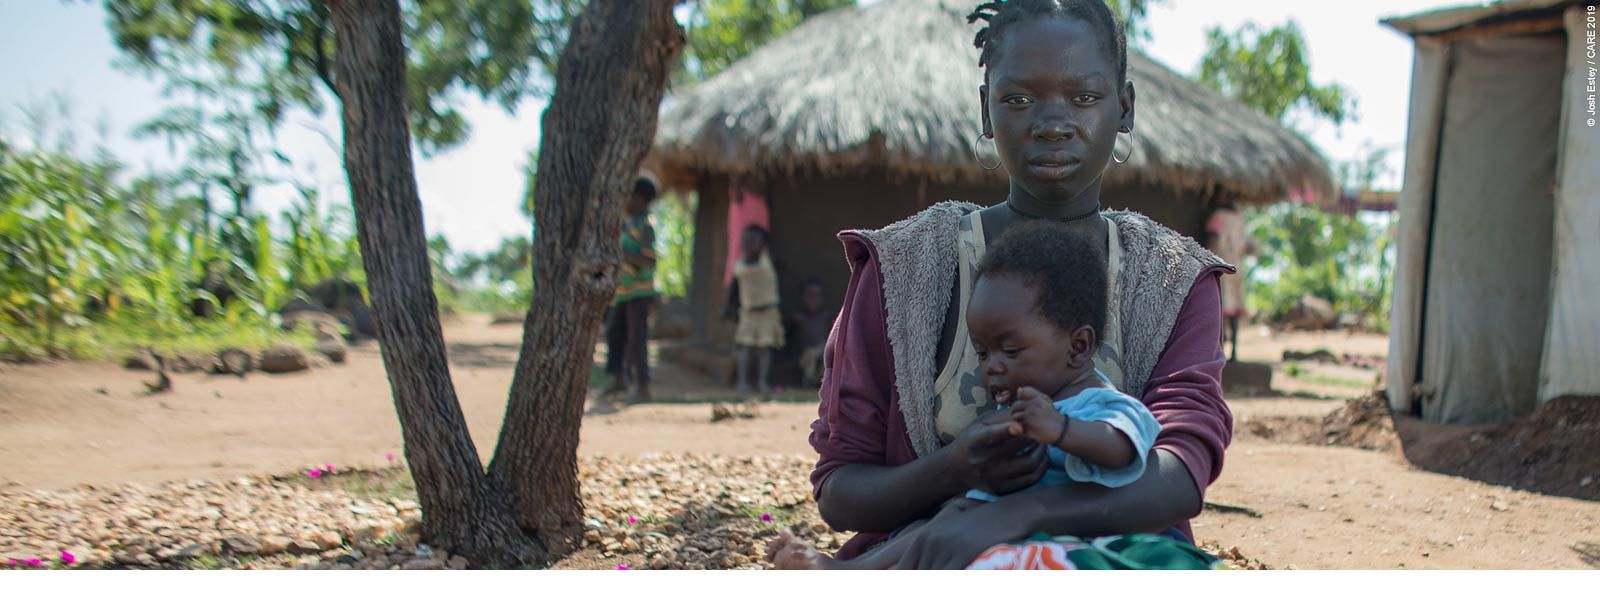 Grace and her baby in refugee camp, Uganda